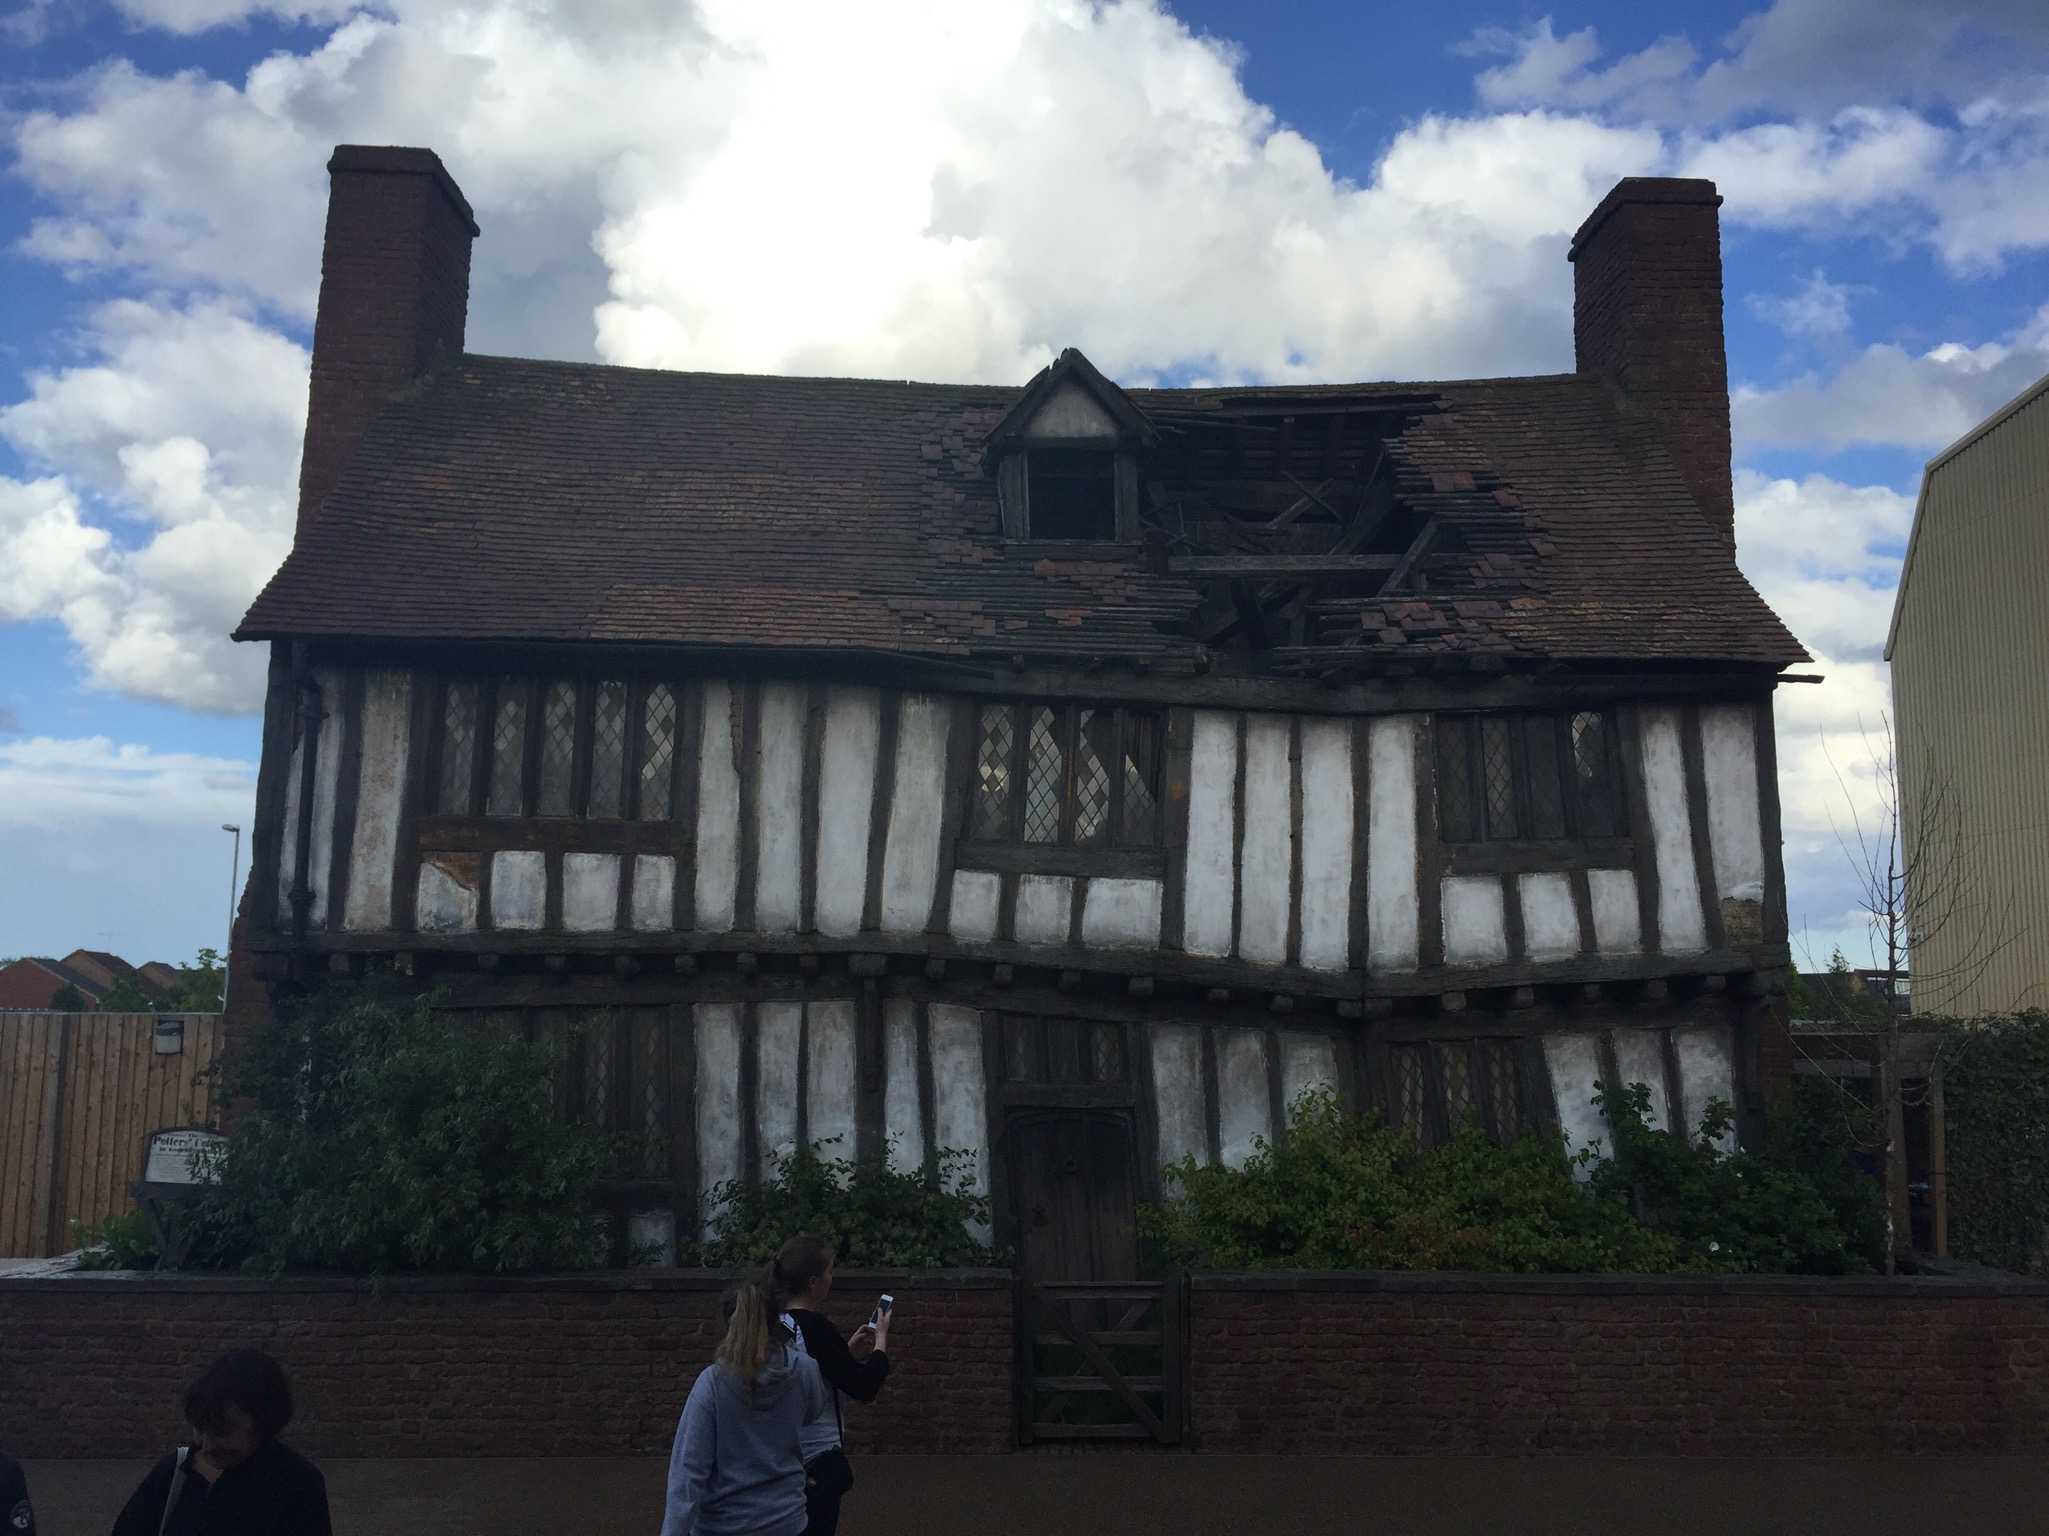 BABY POTTER: You can also visit Godric's Hollow, the birthplace of Harry Potter and where the first battle with Lord Voldemort took place. Spooky.